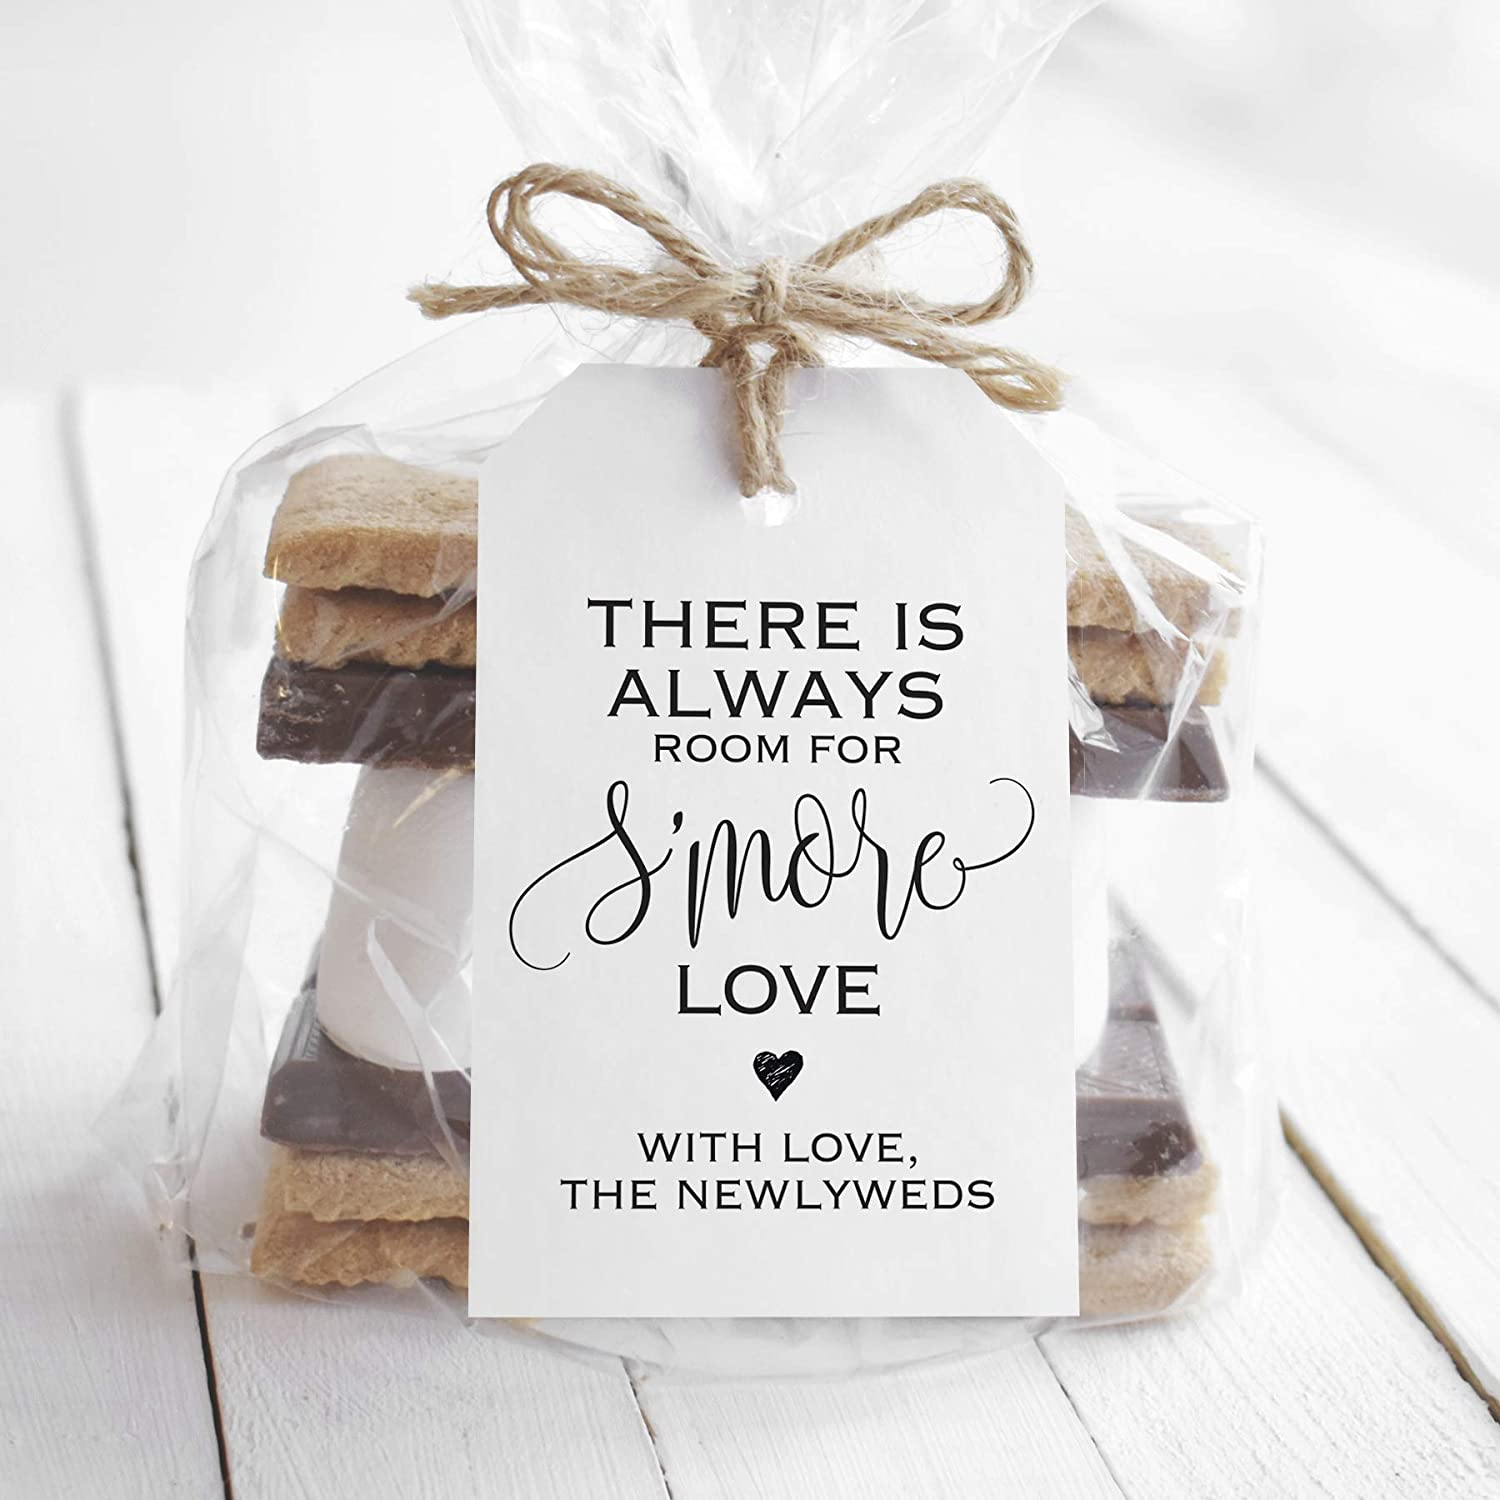 Bliss Collections Thank You for Celebrating with Us Gift and Favor Tags, Pack of 50 S'More Love for Weddings, Bridal Showers, Birthdays, Baby Showers, Celebrations - Makes Cute Favors